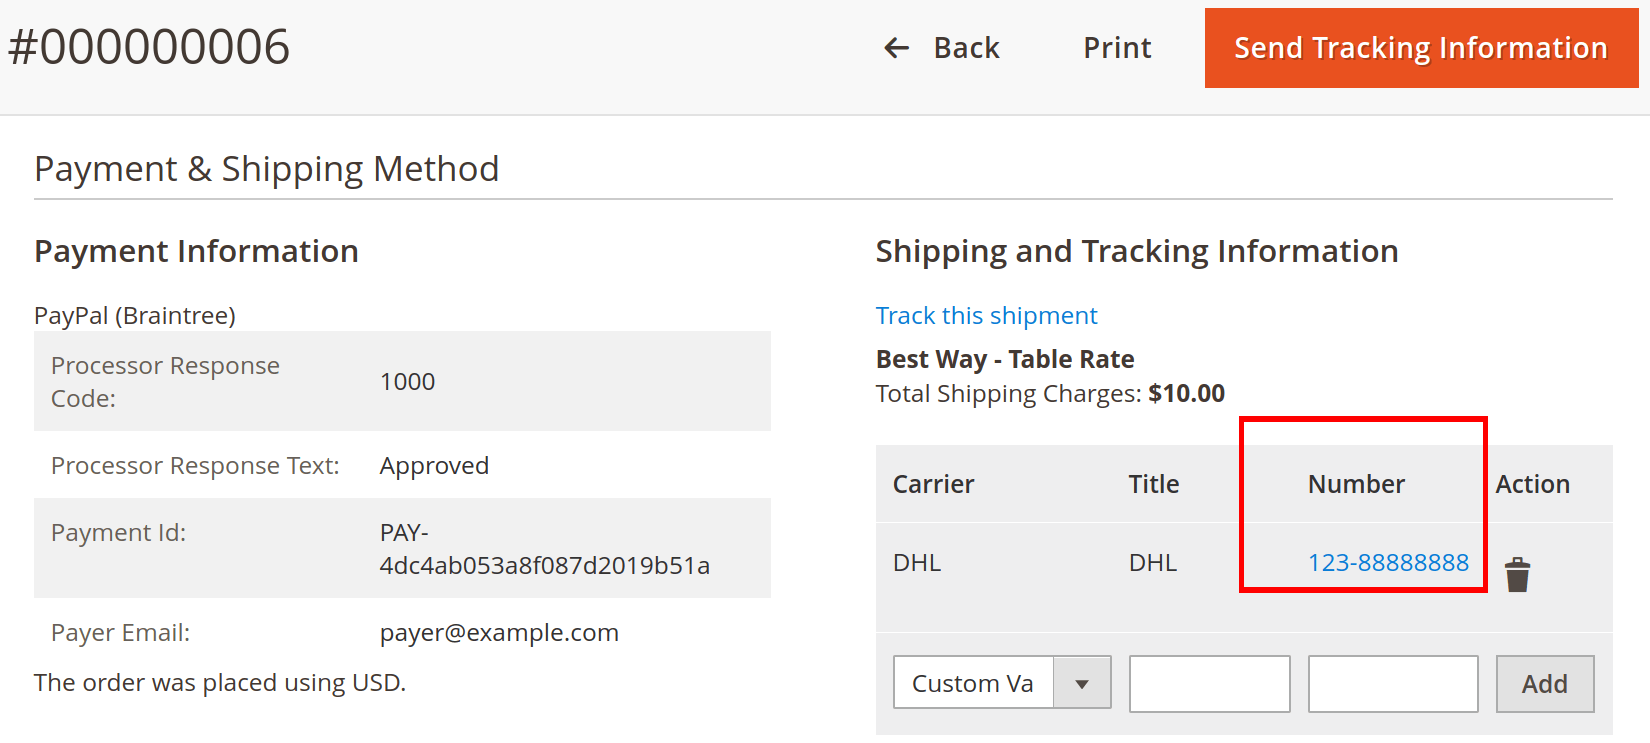 Created tracking number of the order